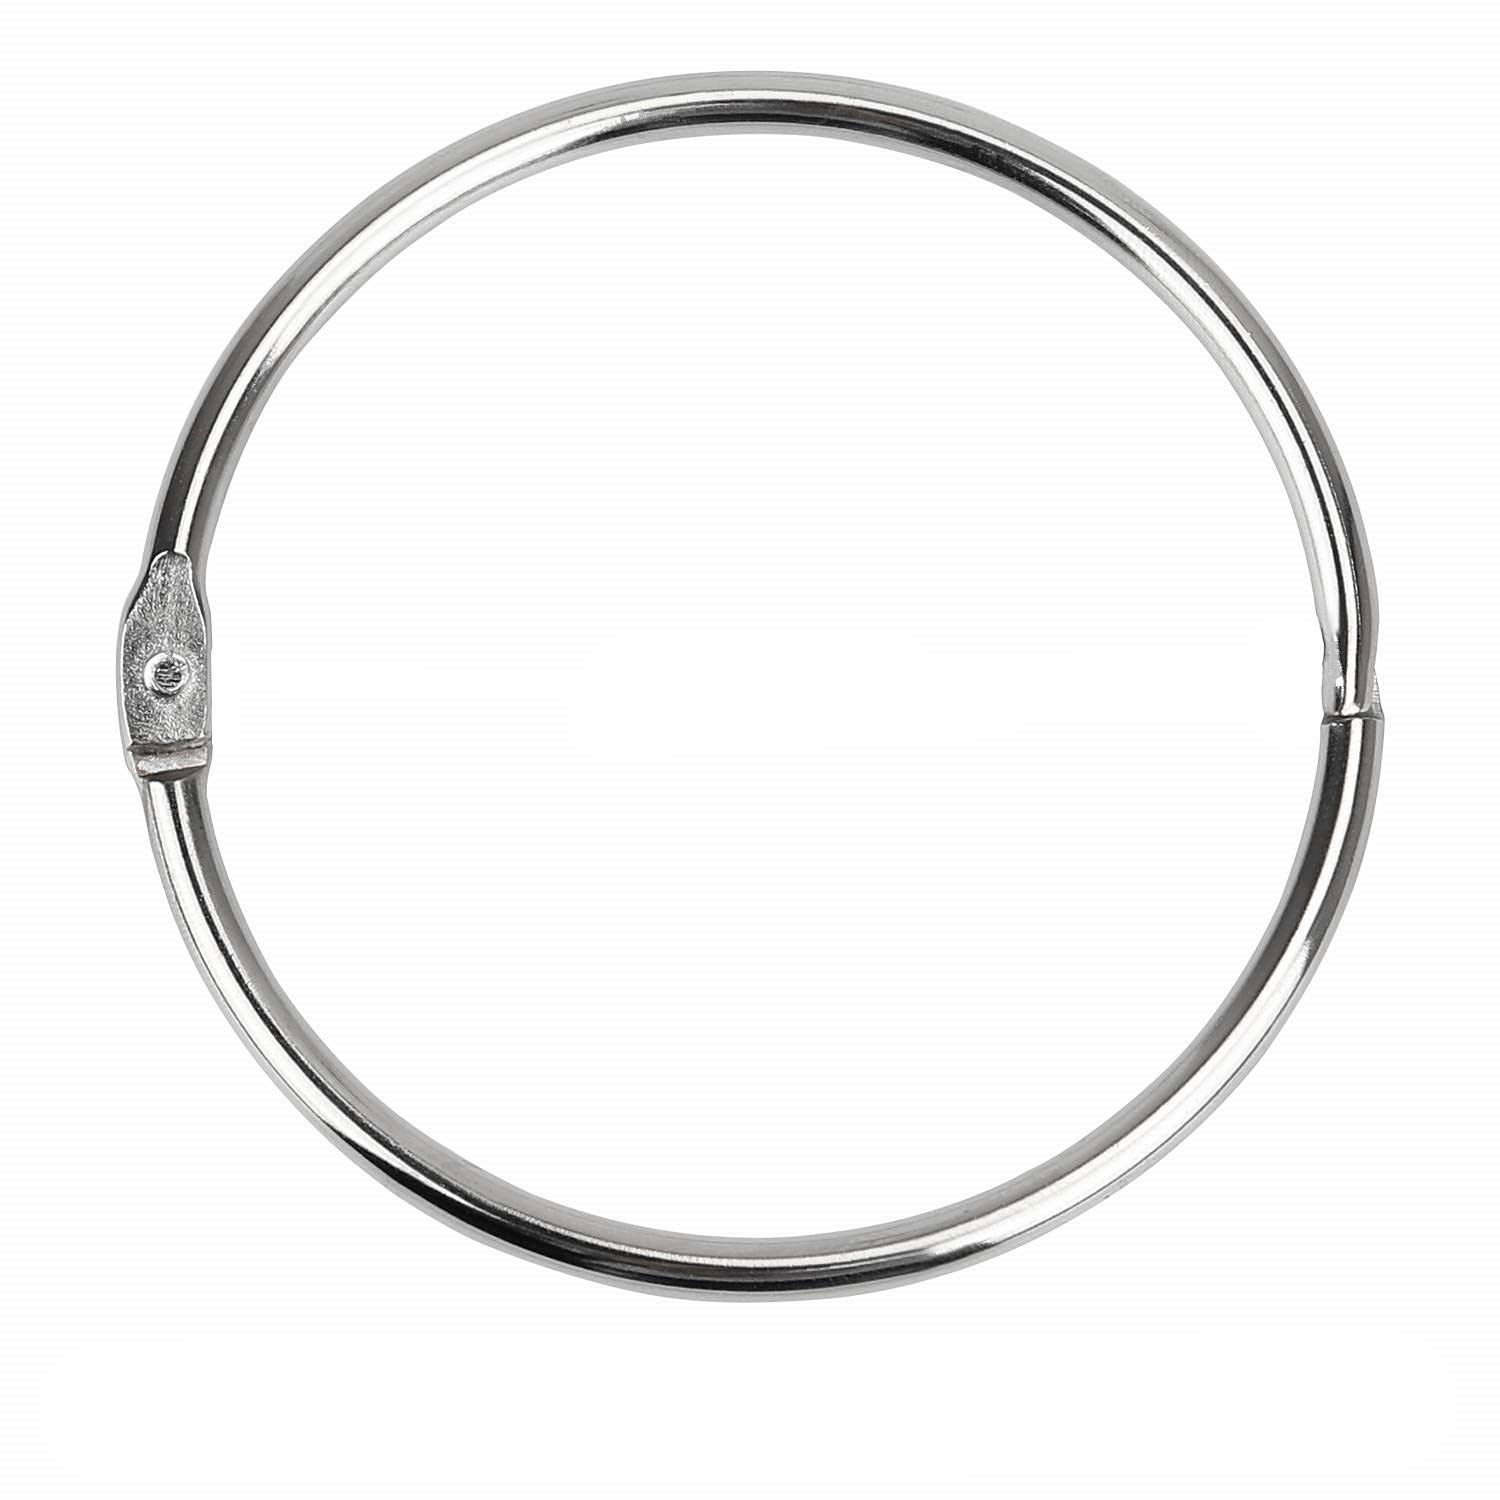 Perfect binder rings, just as described